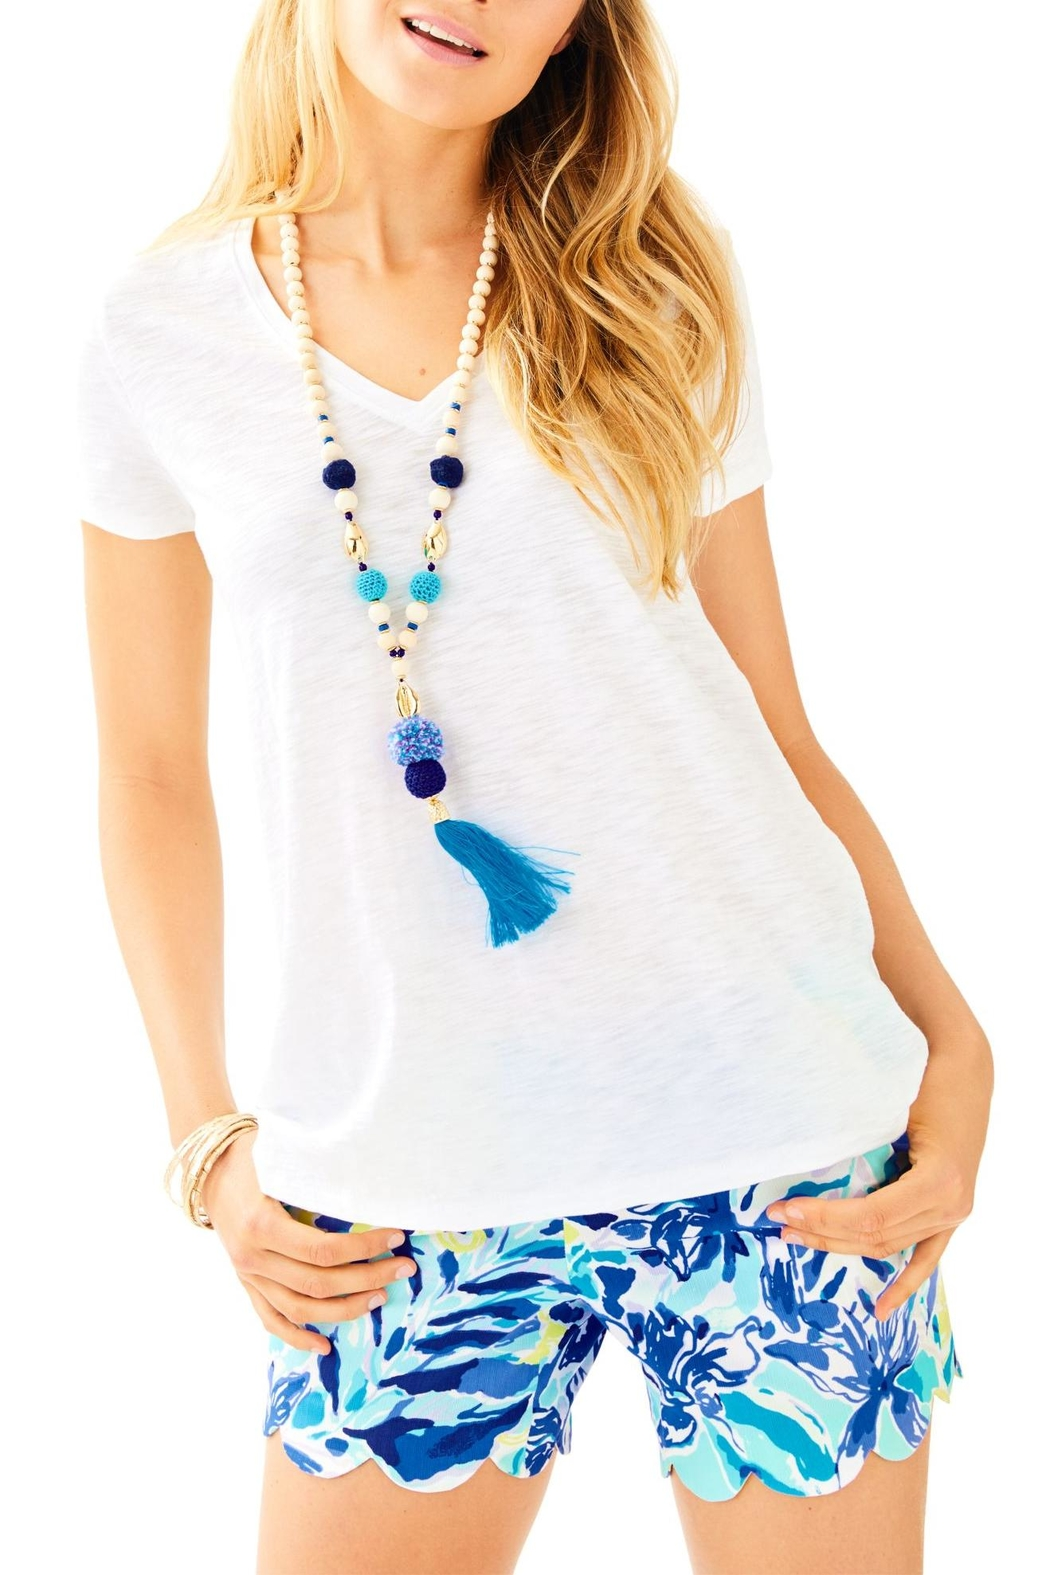 7417afd0a5bcab Lilly Pulitzer Etta Top from Sandestin Golf and Beach Resort by ...